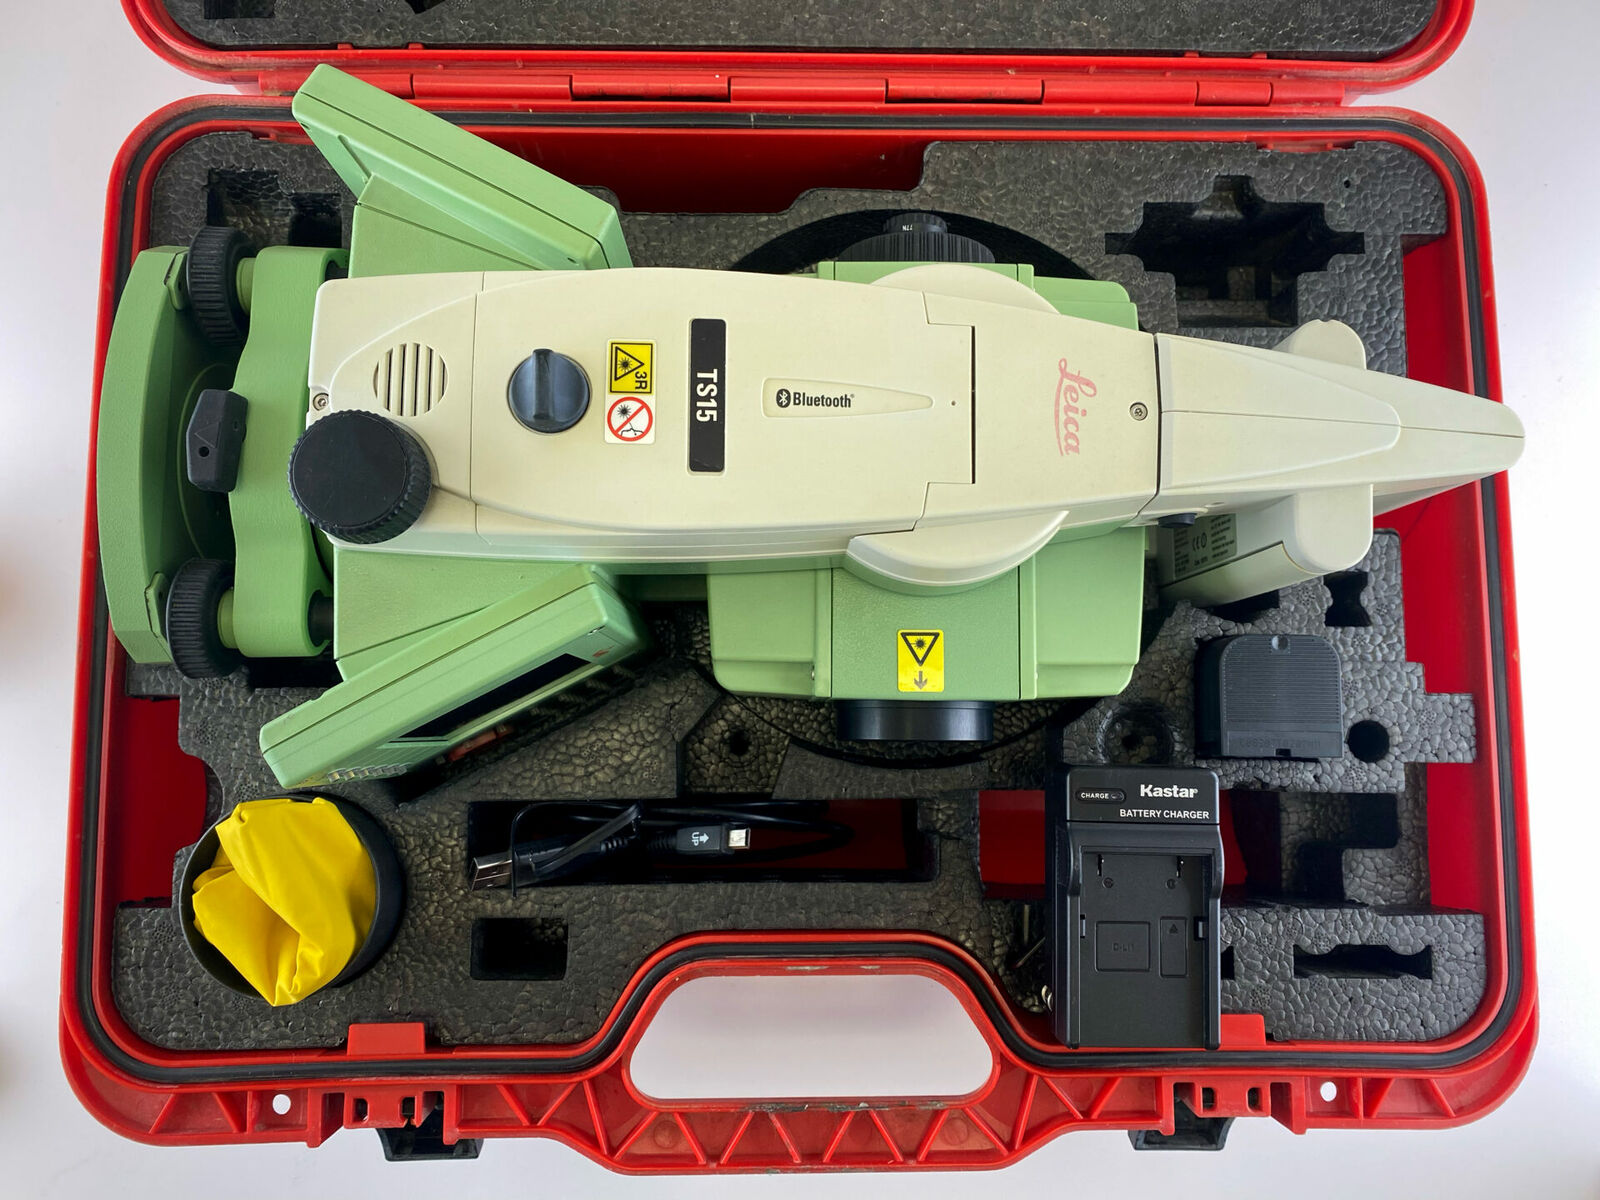 """Leica TS15 P 3"""" R400 Robotic Total Station Reconditioned, Financing Available!"""